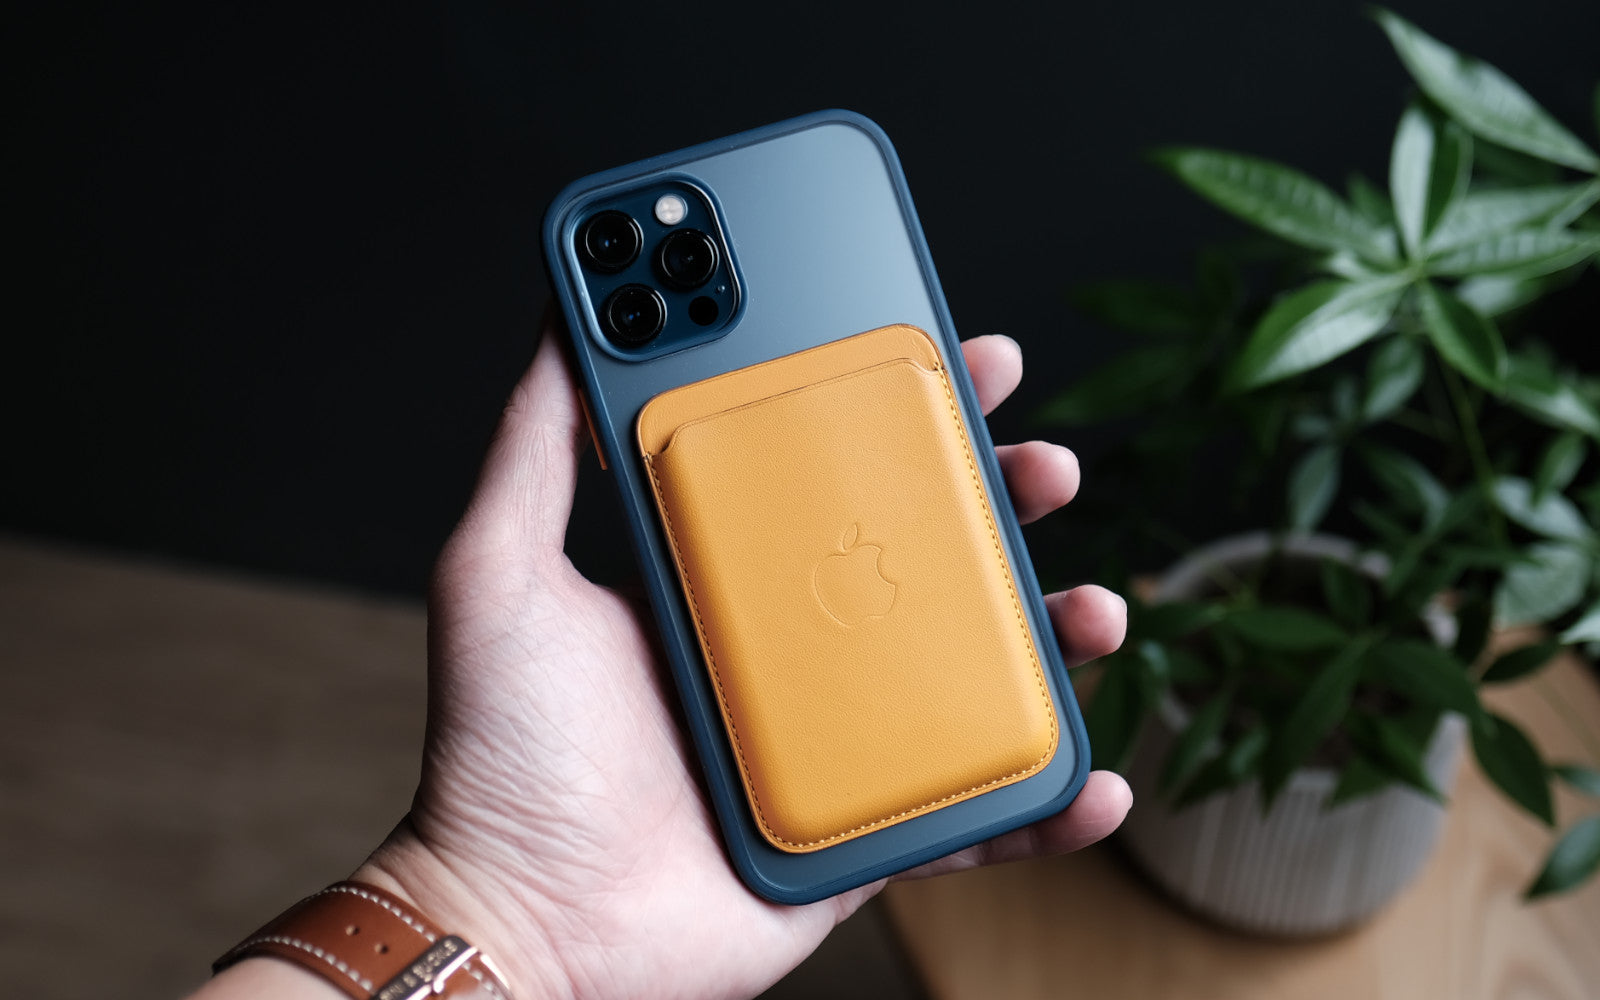 Bare Armour - Minimalist Shock Resistant Case for iPhone 12 Pro and iPhone 12 Pro Max - Works with MagSafe Accessories